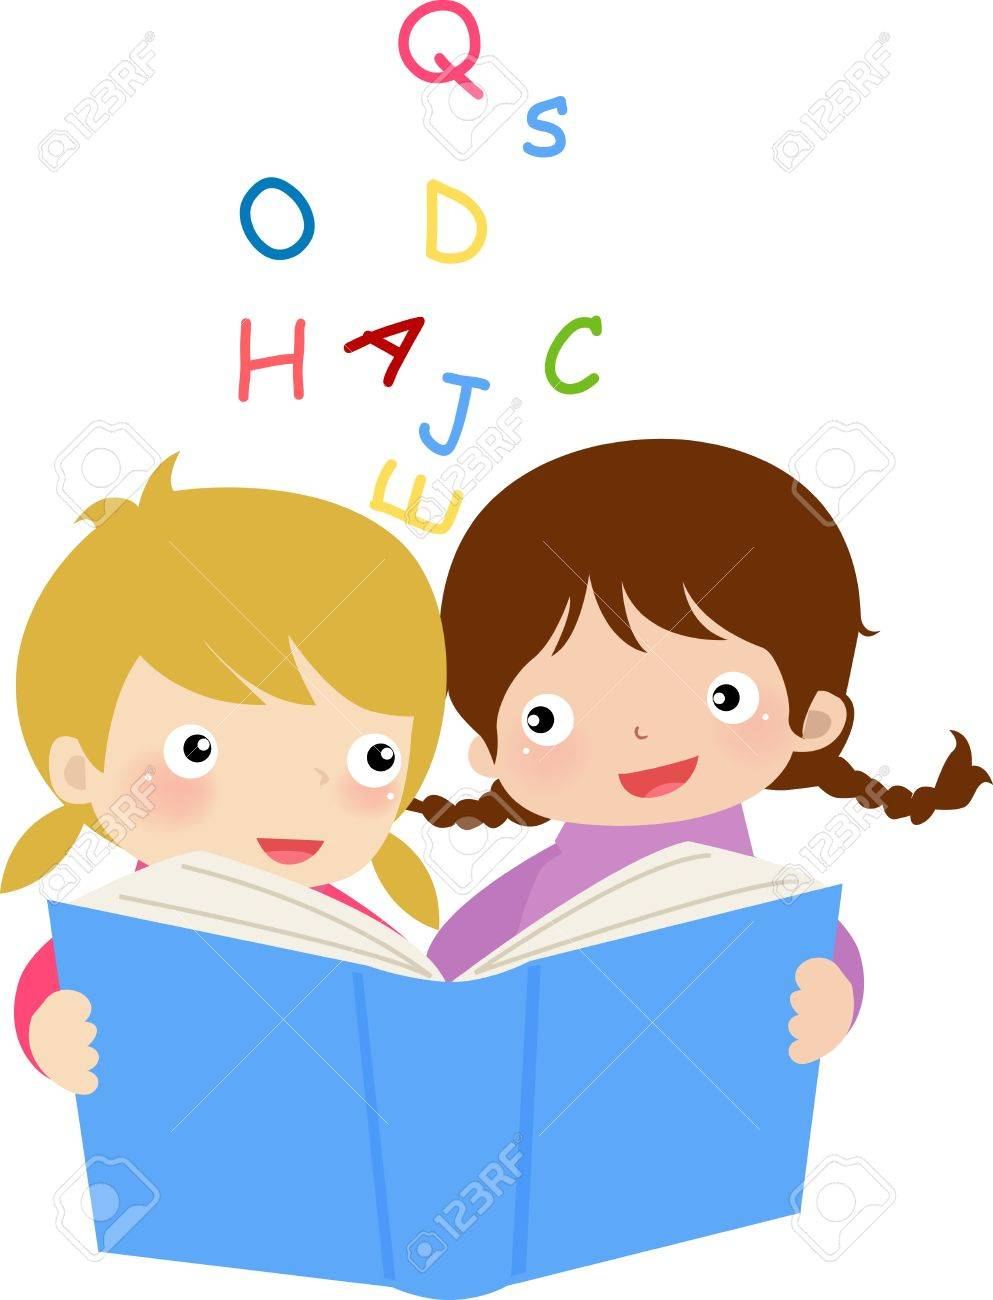 two girls reading book.